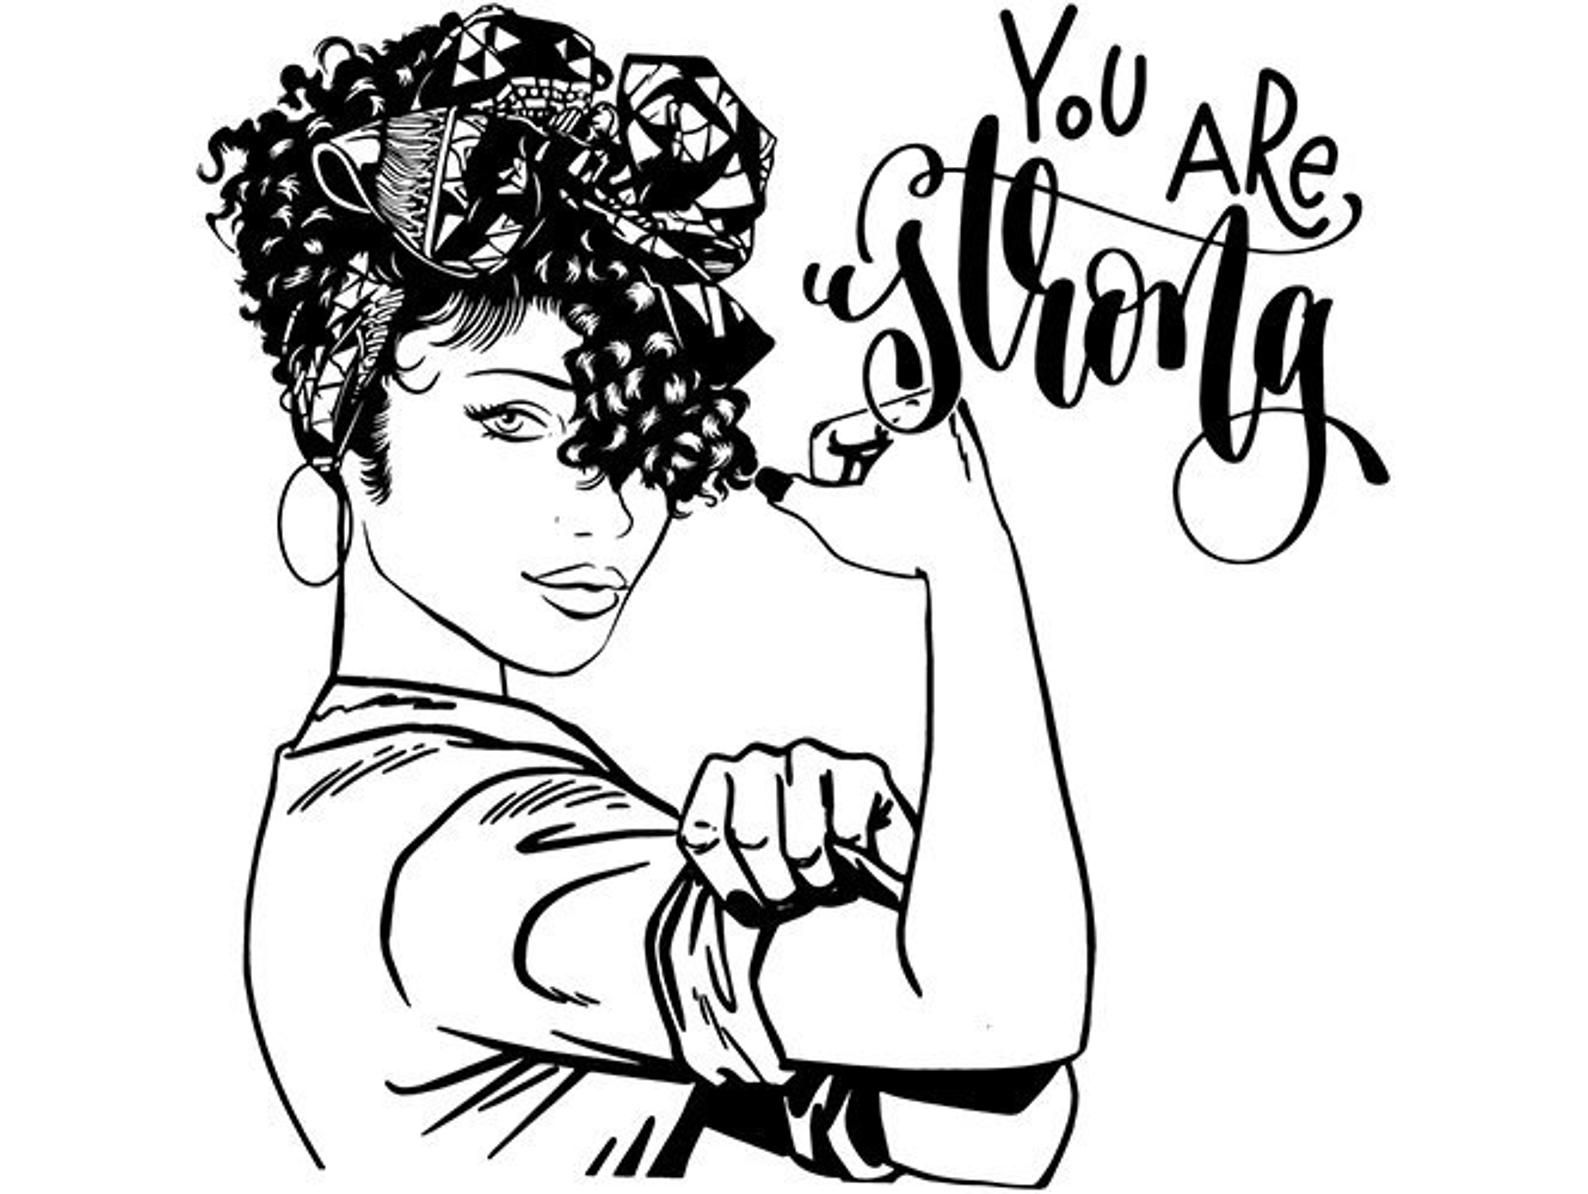 Black Woman Life Quotes Strong Diva Classy Lady Nubian Queen Etsy Strong Black Woman Strong Black Woman Quotes Black Women Art